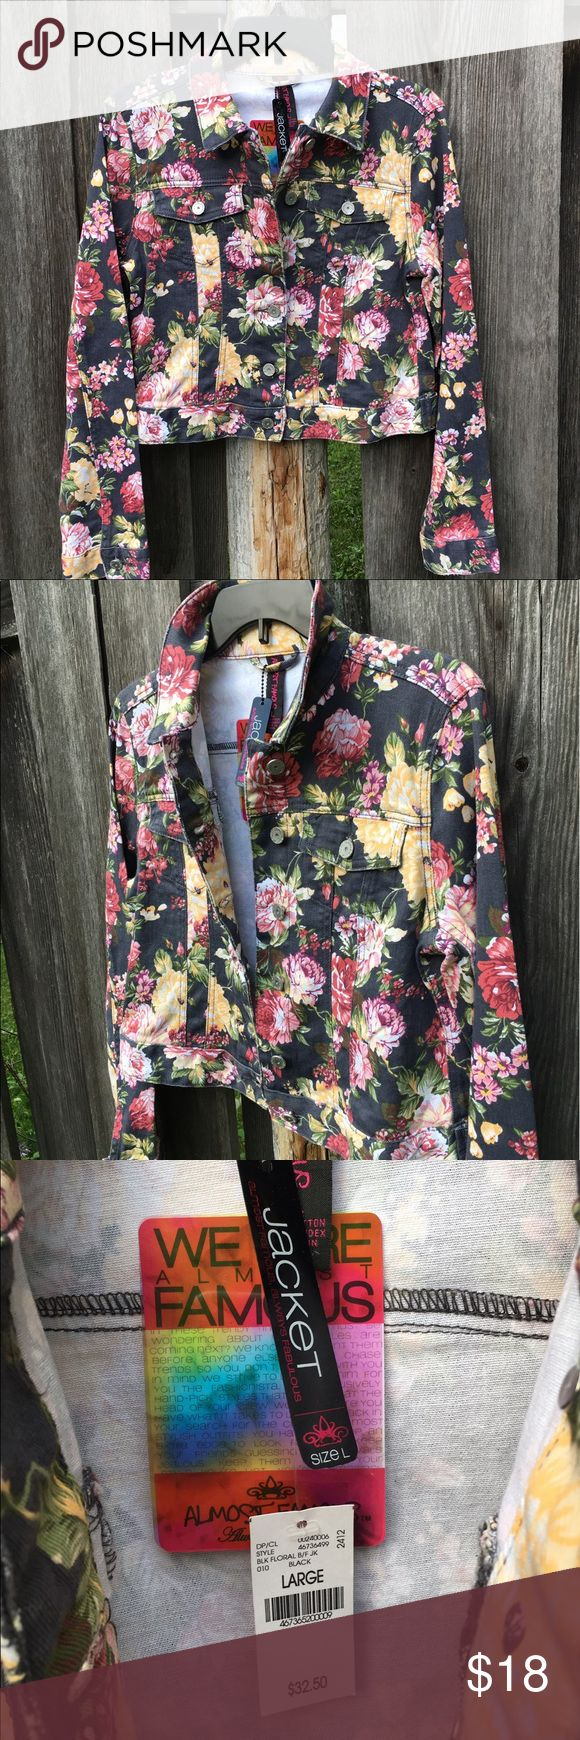 Almost Famous floral denim jacket NWT. Large Almost Famous. New with Tags. Floral denim jacket. Black with pink, yellow & green floral. Button down. Double breasted button pockets. Juniors Large or Women's Small/Medium. Bust 32-36inch, fitted, slightly cropped style. 98% Cotton, 2% Spandex. Almost Famous Jackets & Coats Jean Jackets